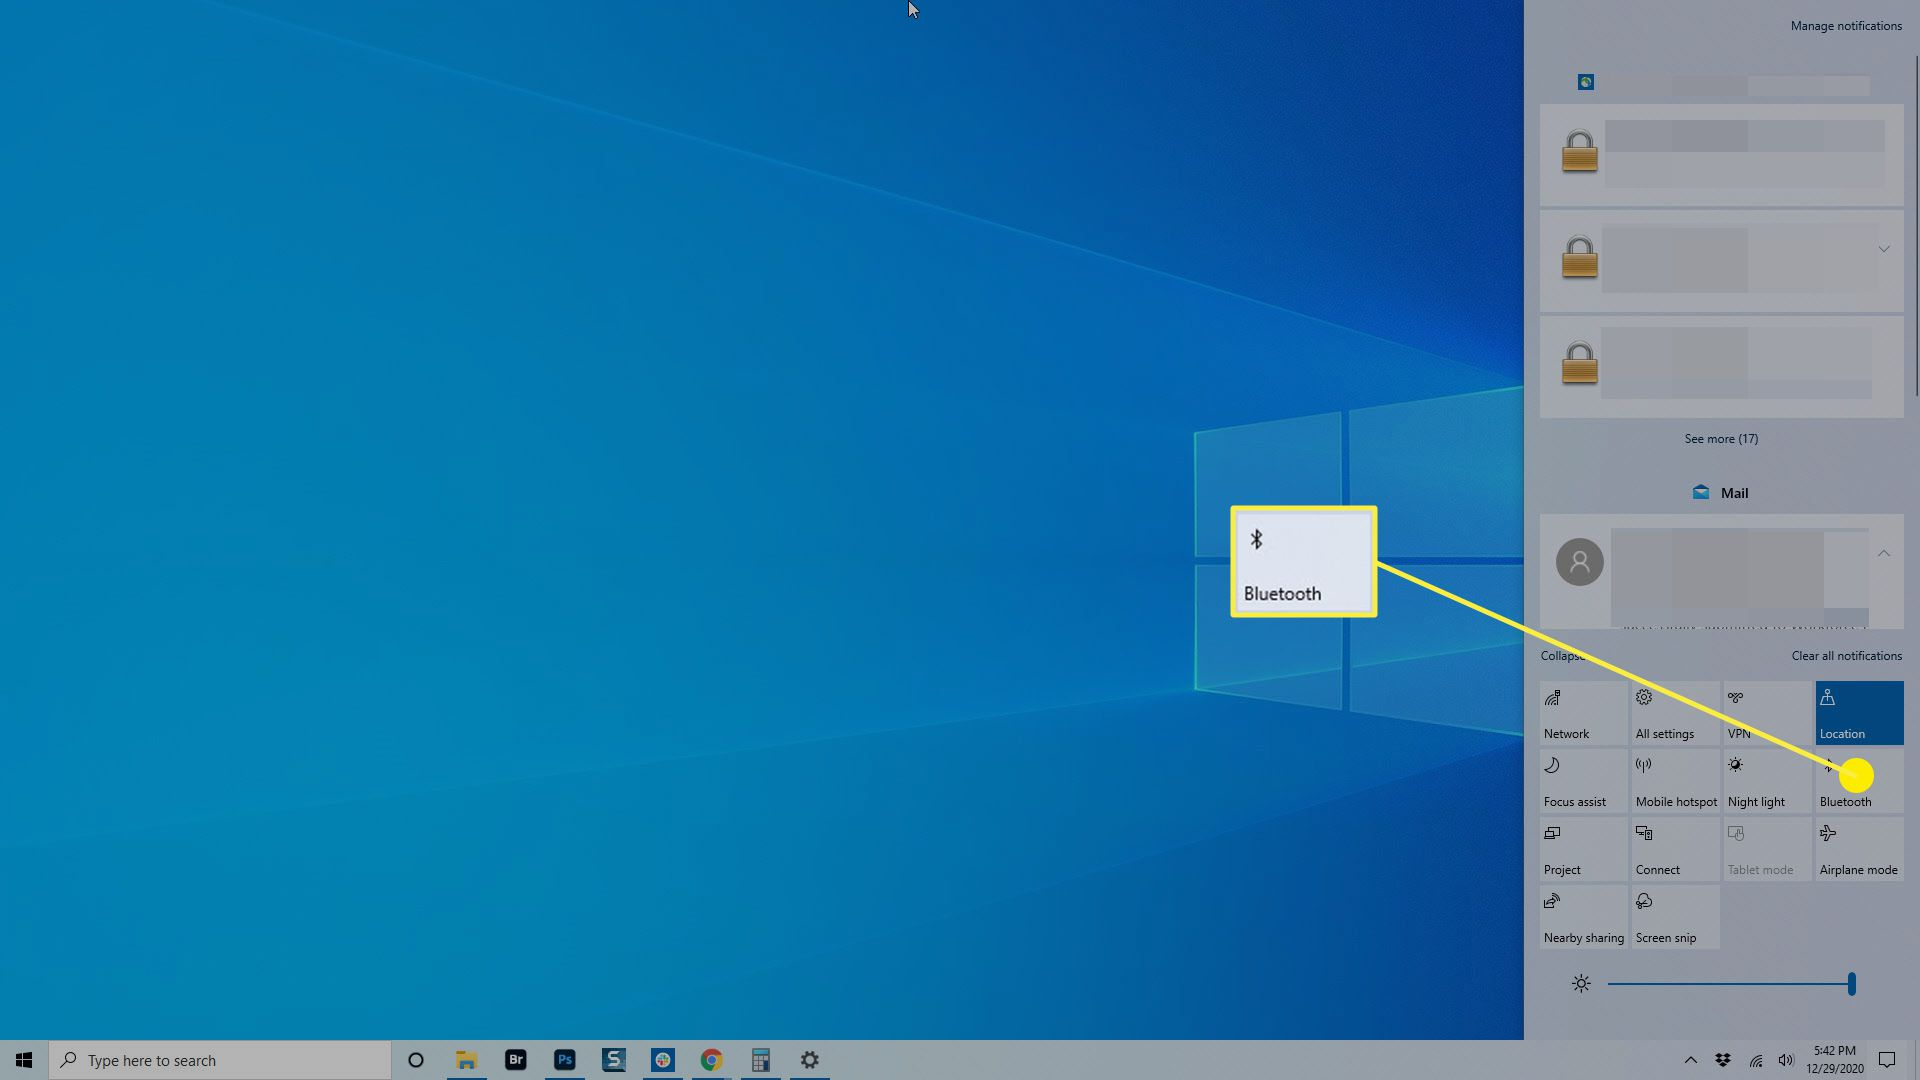 The Bluetooth option in the Windows Action Center.